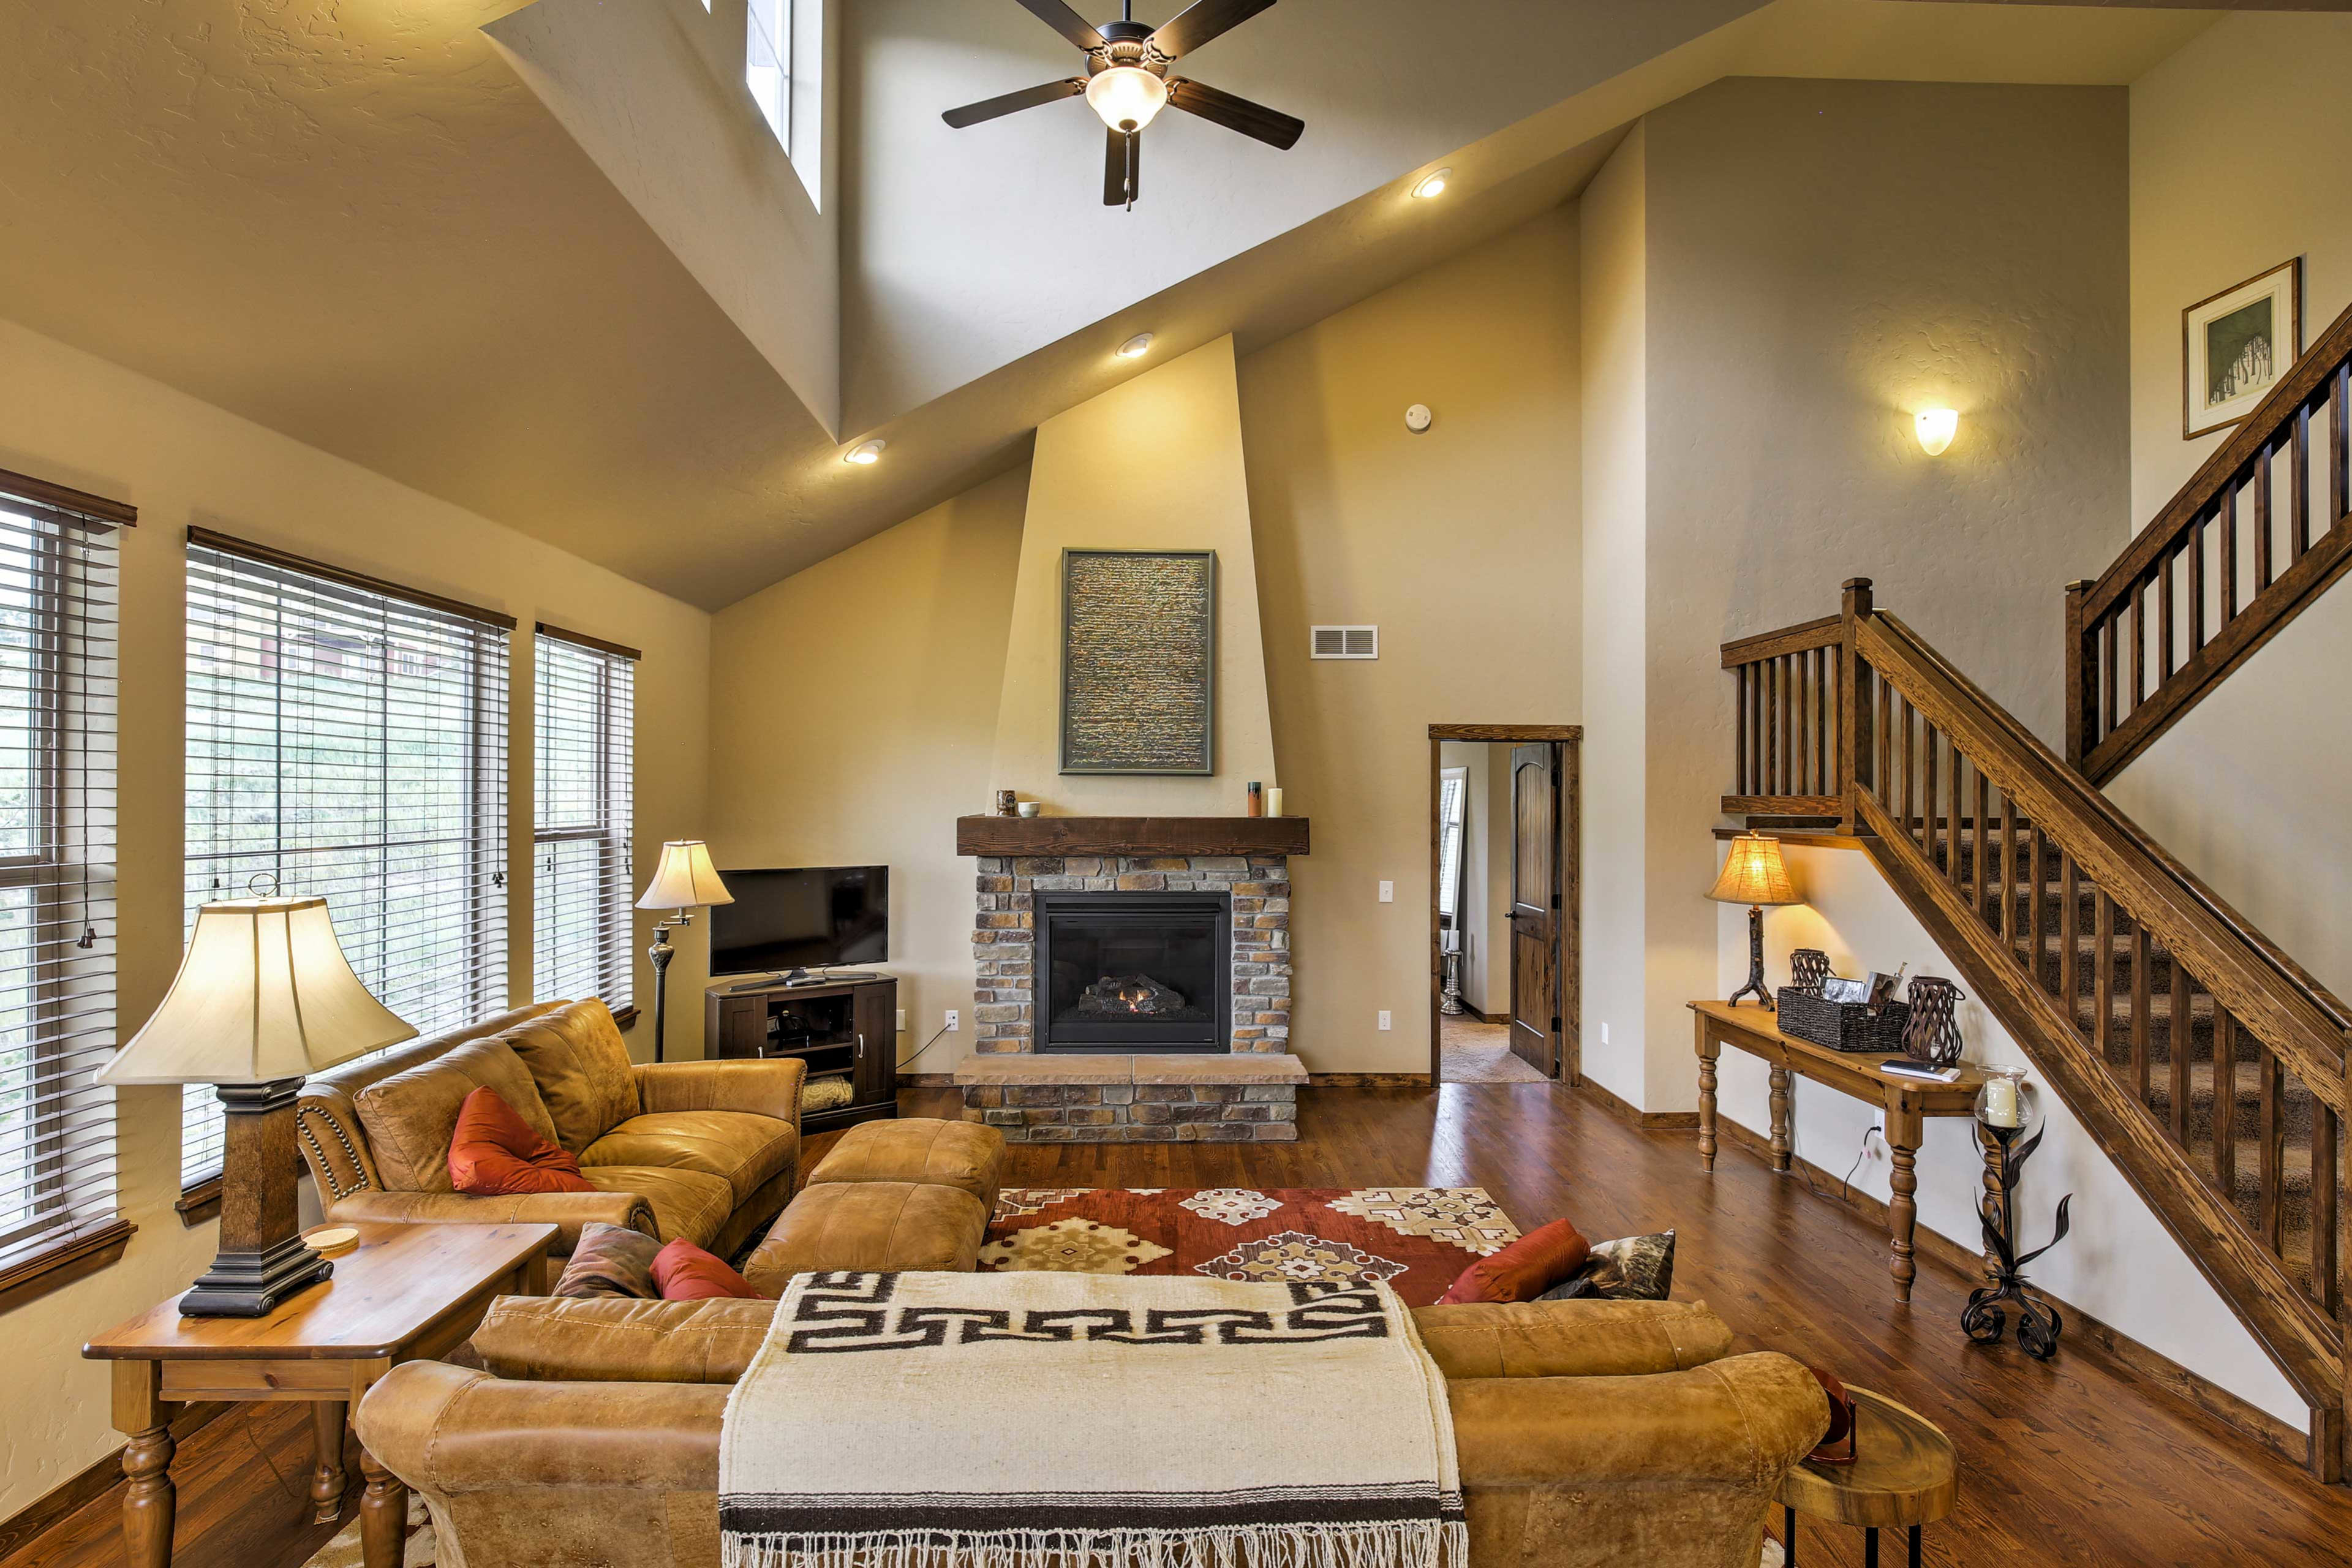 Unwind in the spacious living area with a gas fireplace, comfy couches, and TV.